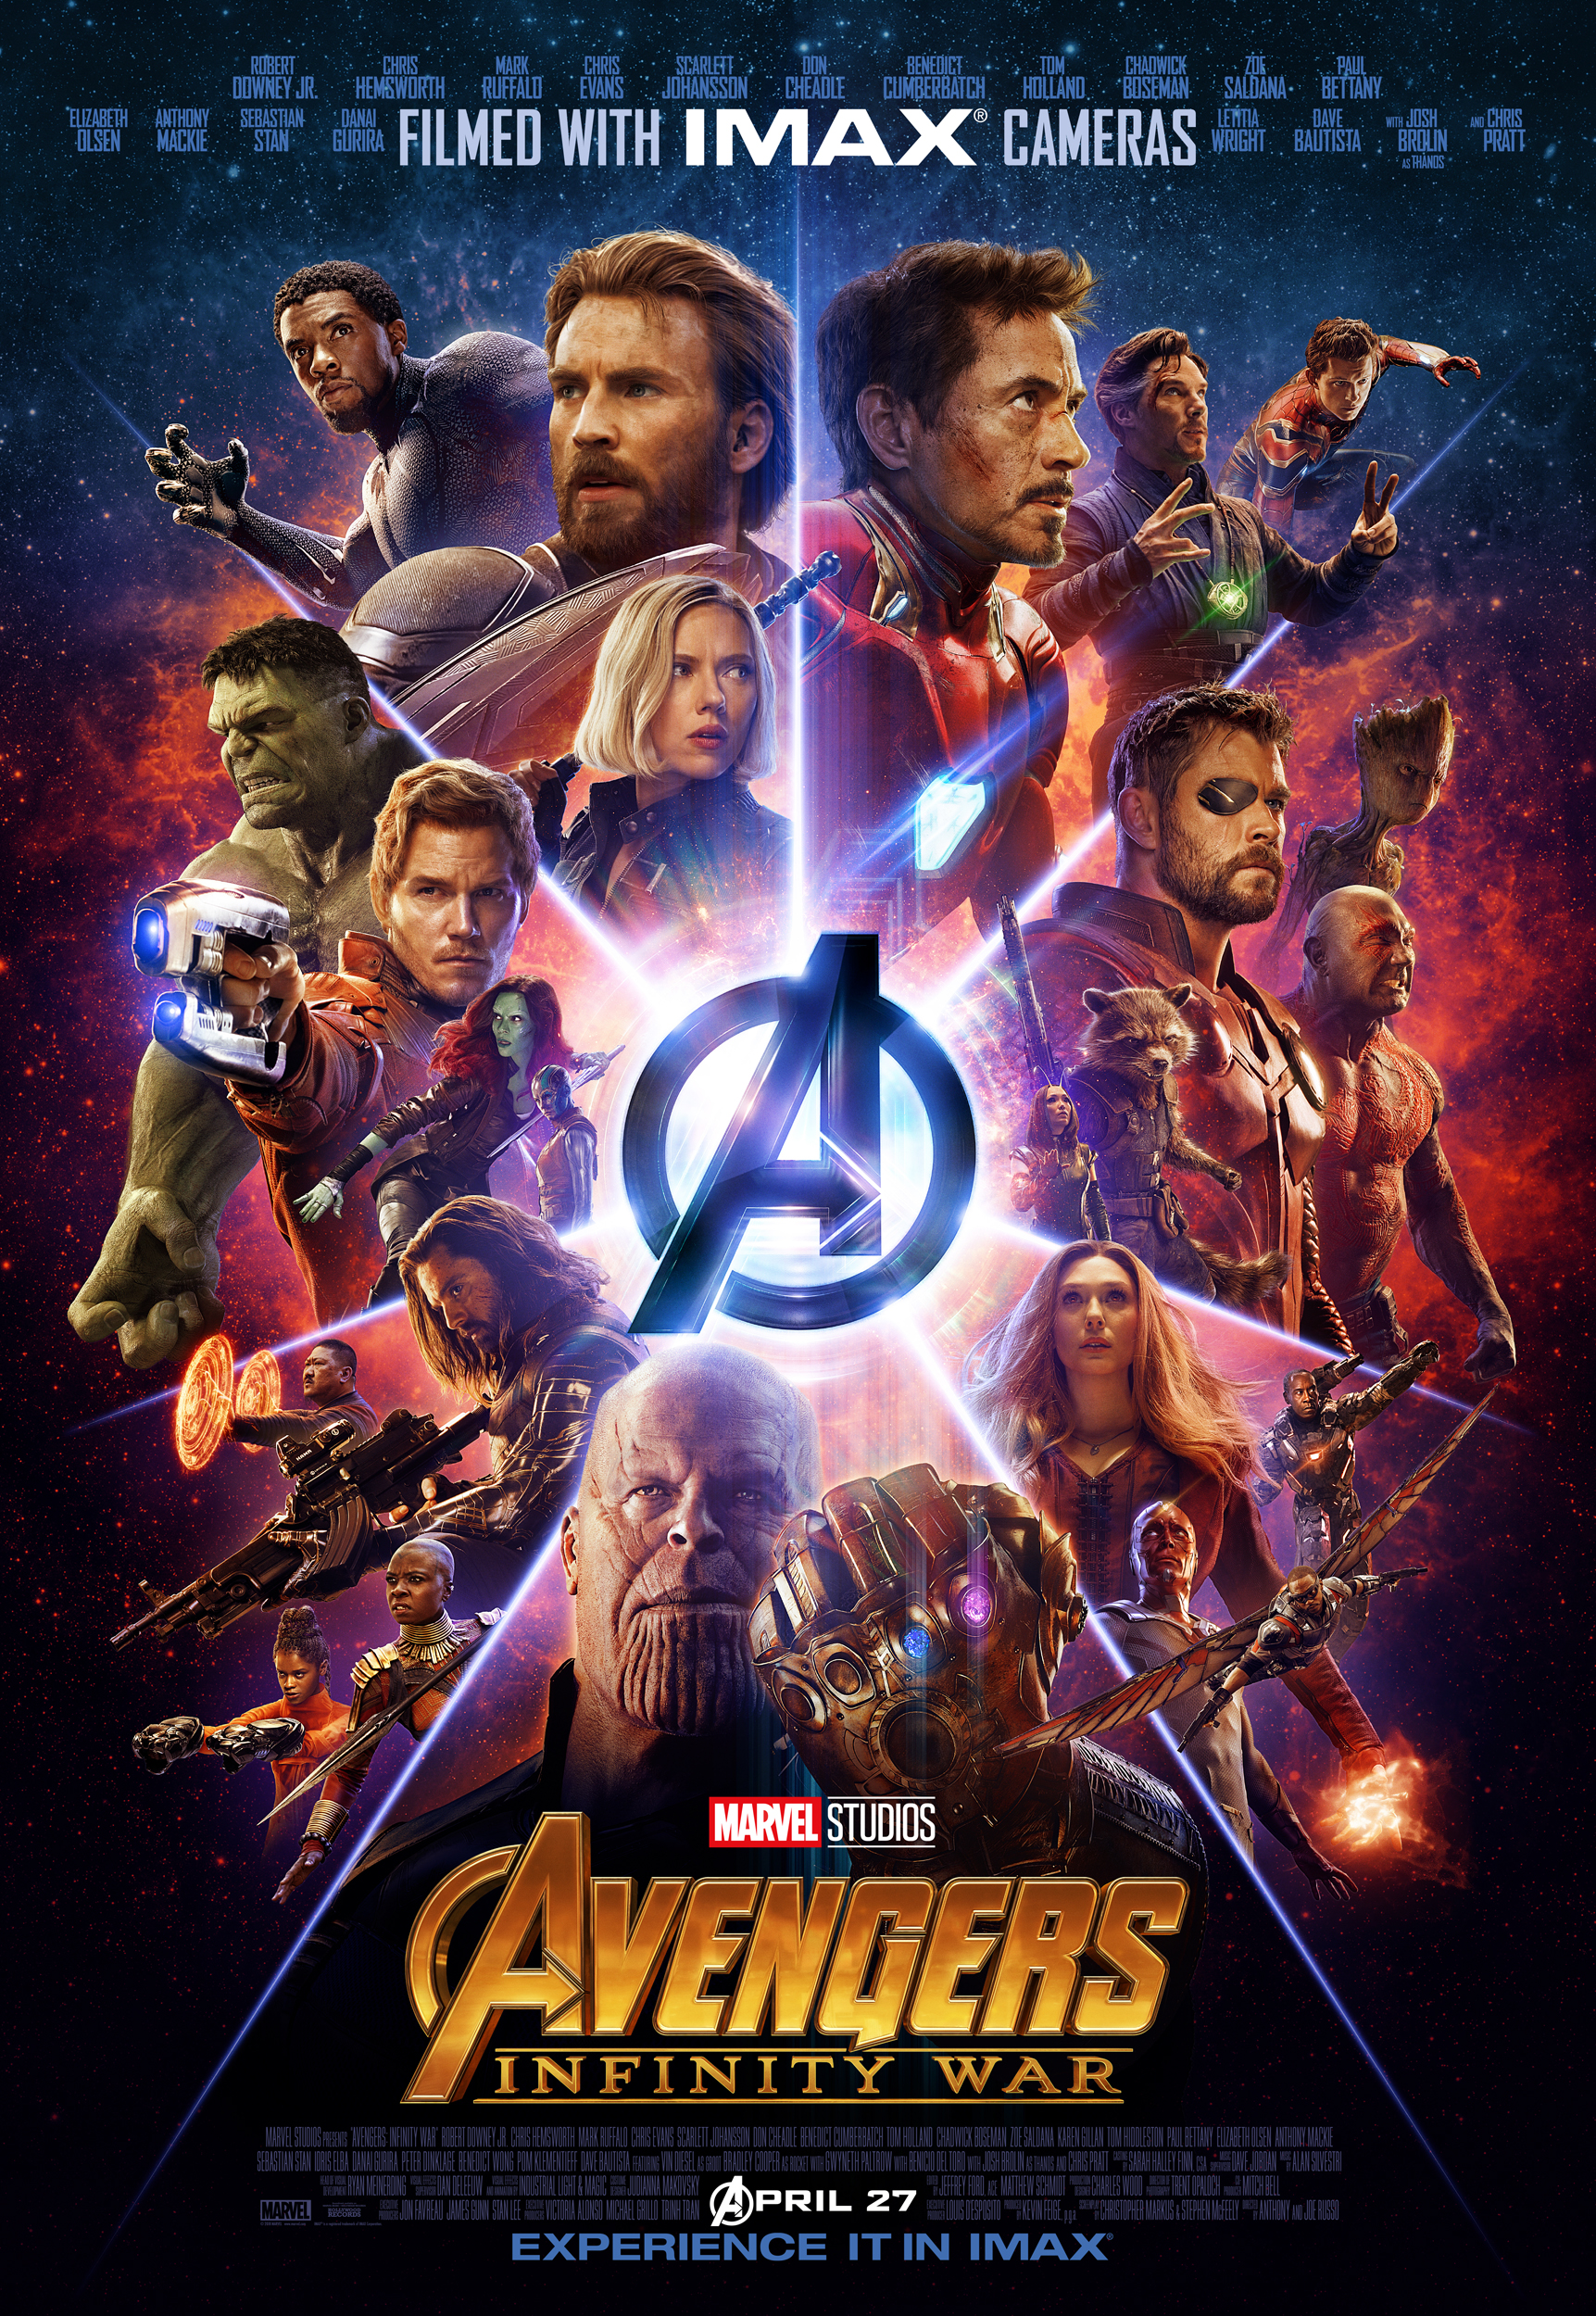 The Avengers Infinity War Poster